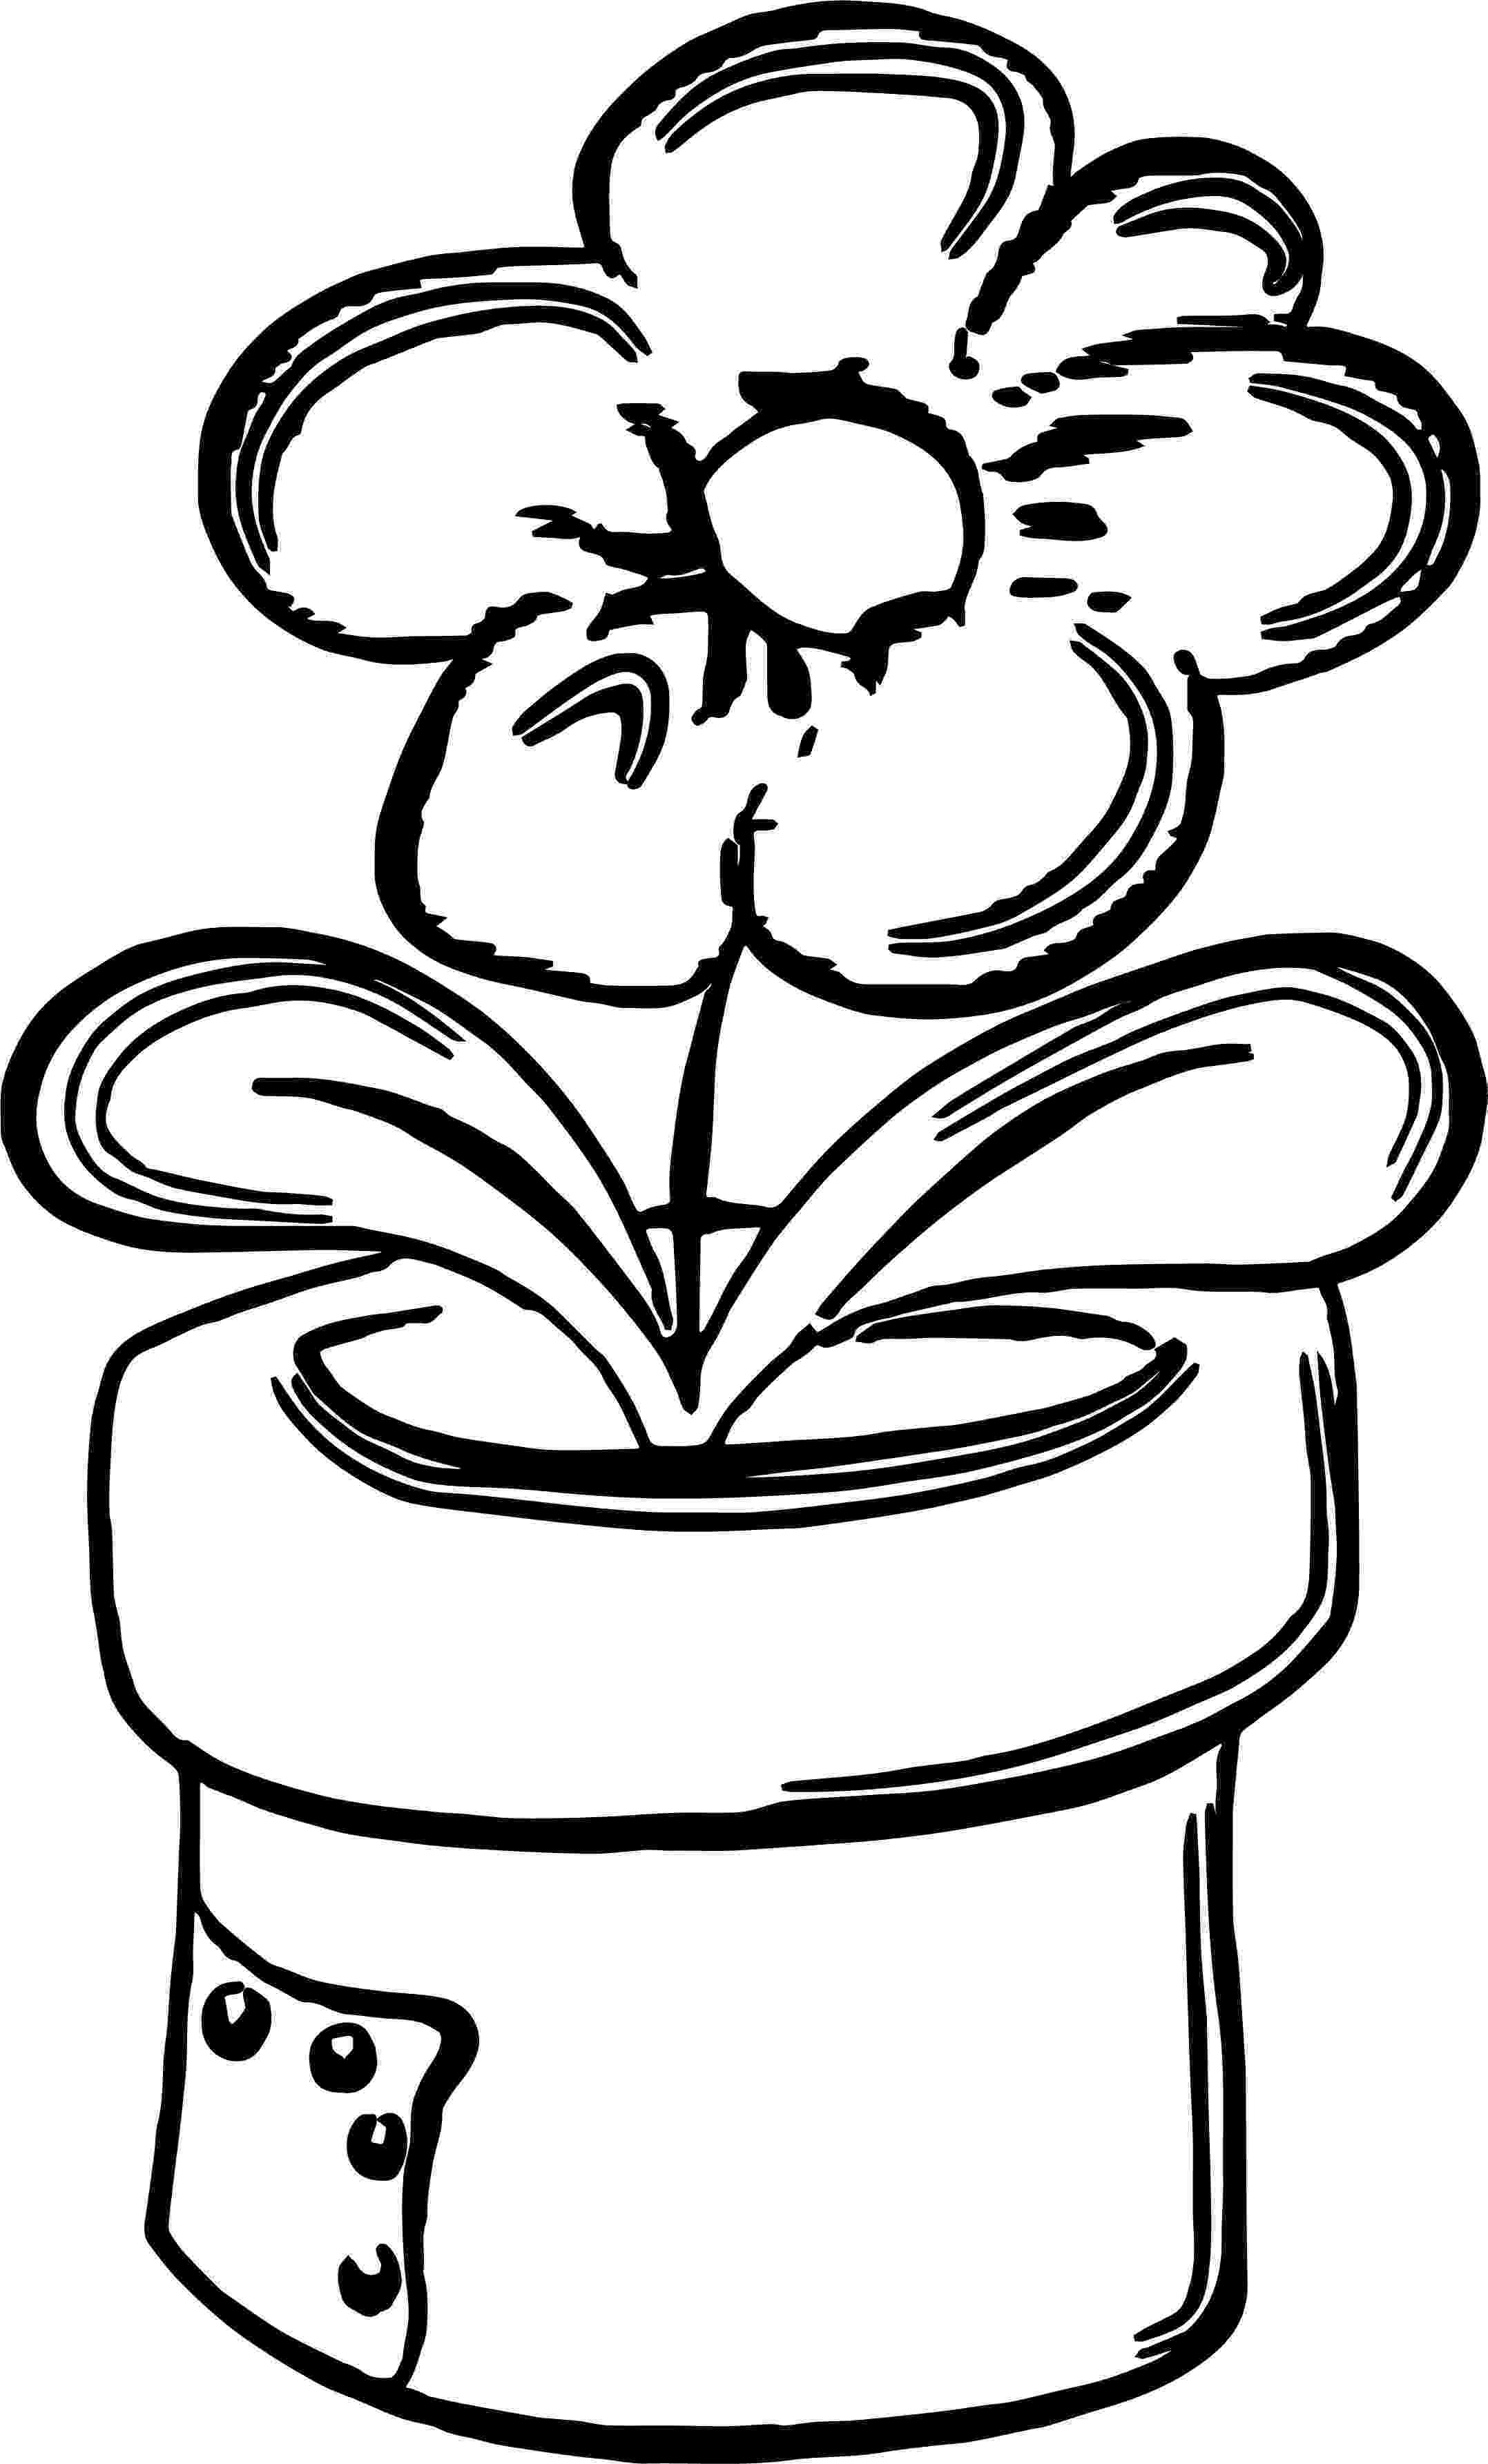 spring flower coloring pages printable spring coloring pages spring flower pages coloring